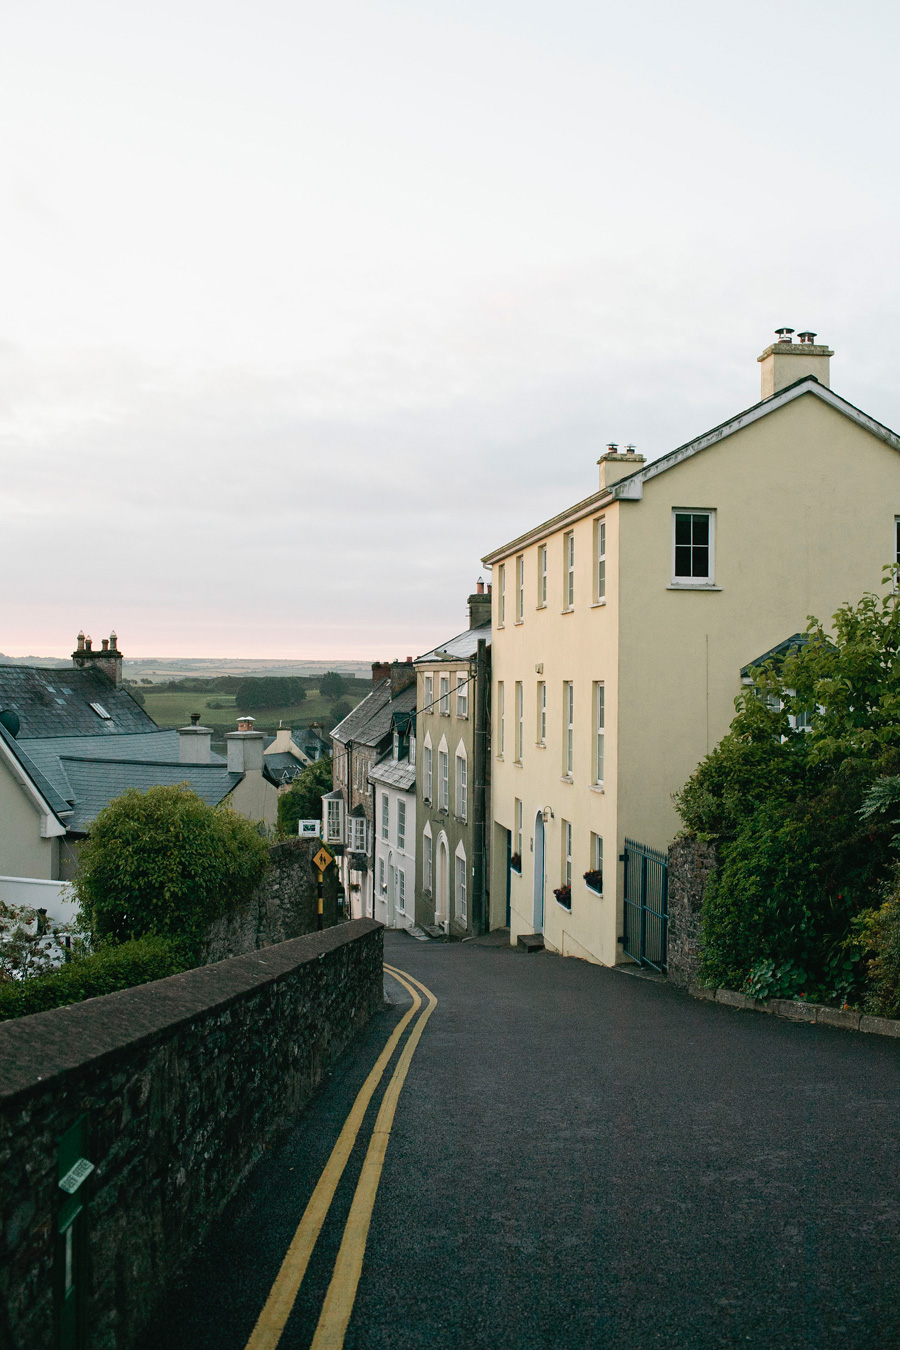 kinsale, ireland // a thousand threads